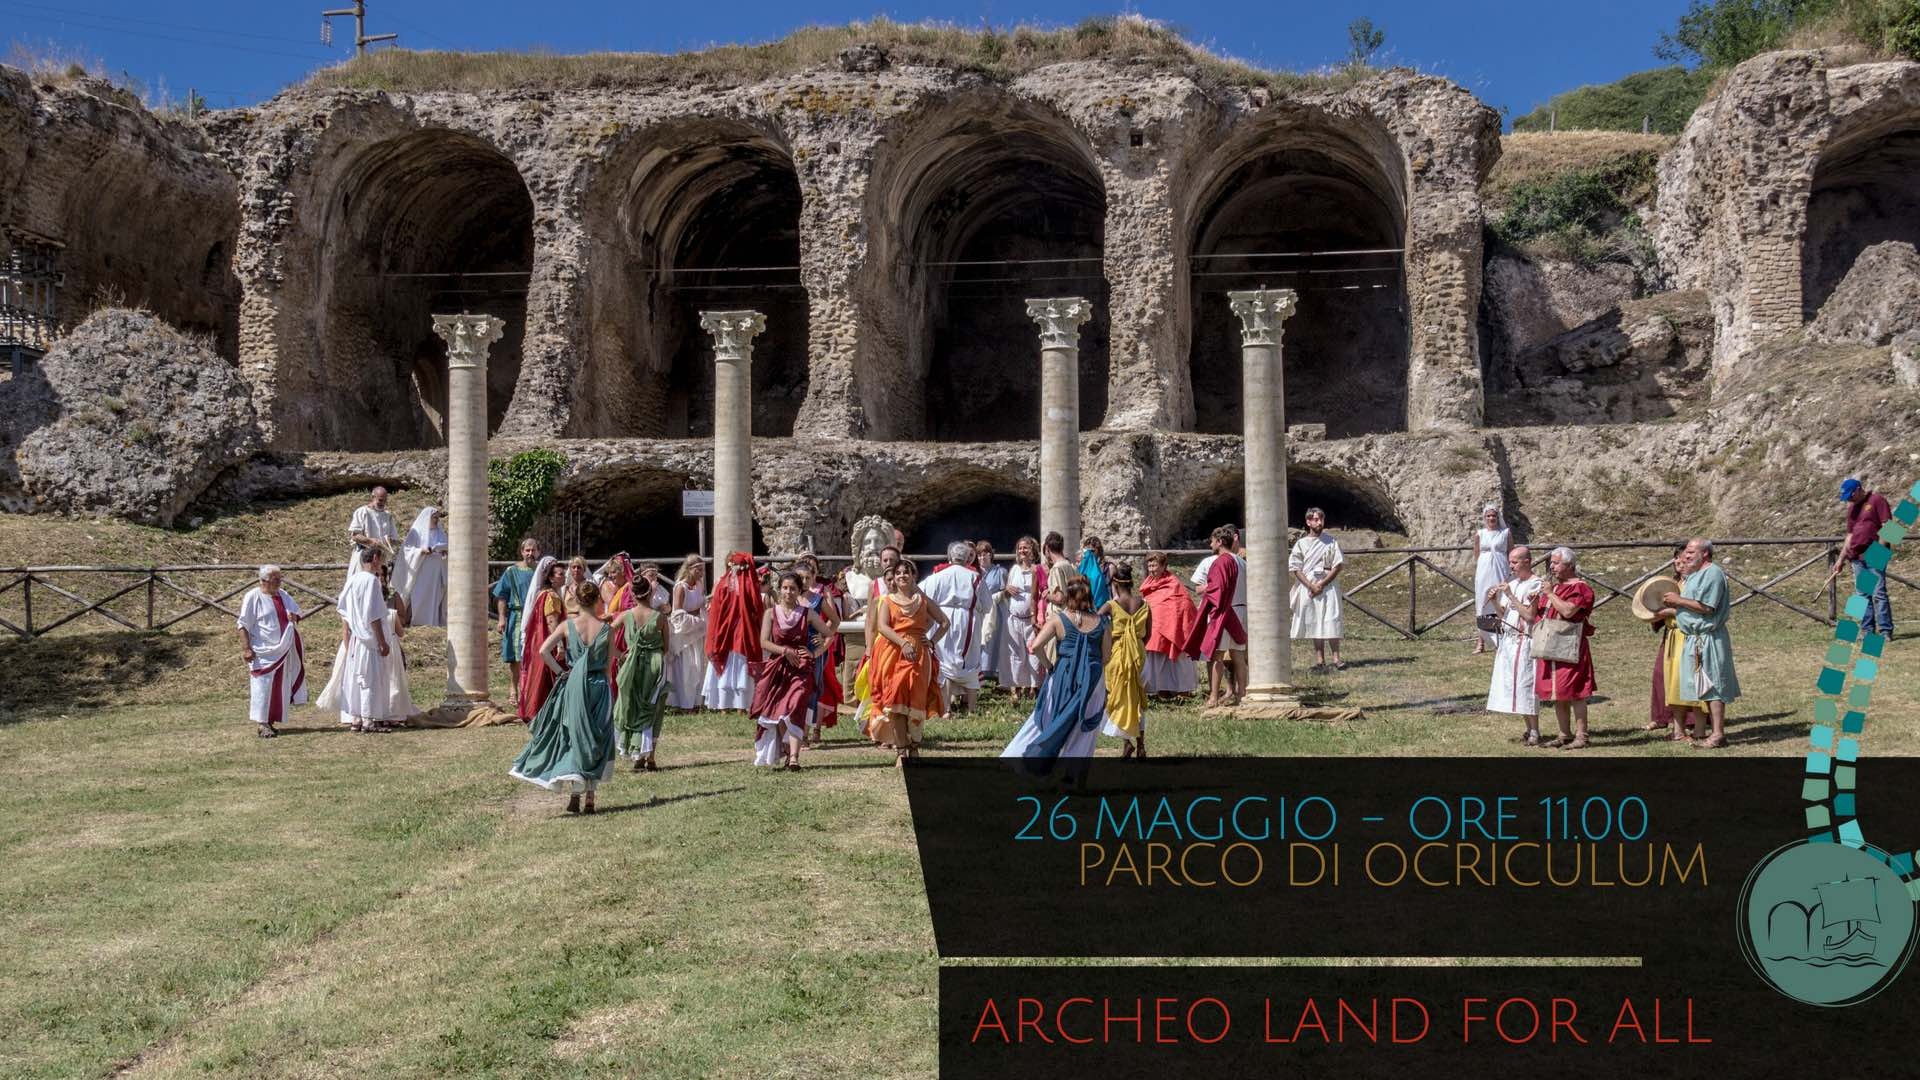 26 MAGGIO: ARCHEO LAND FOR ALL